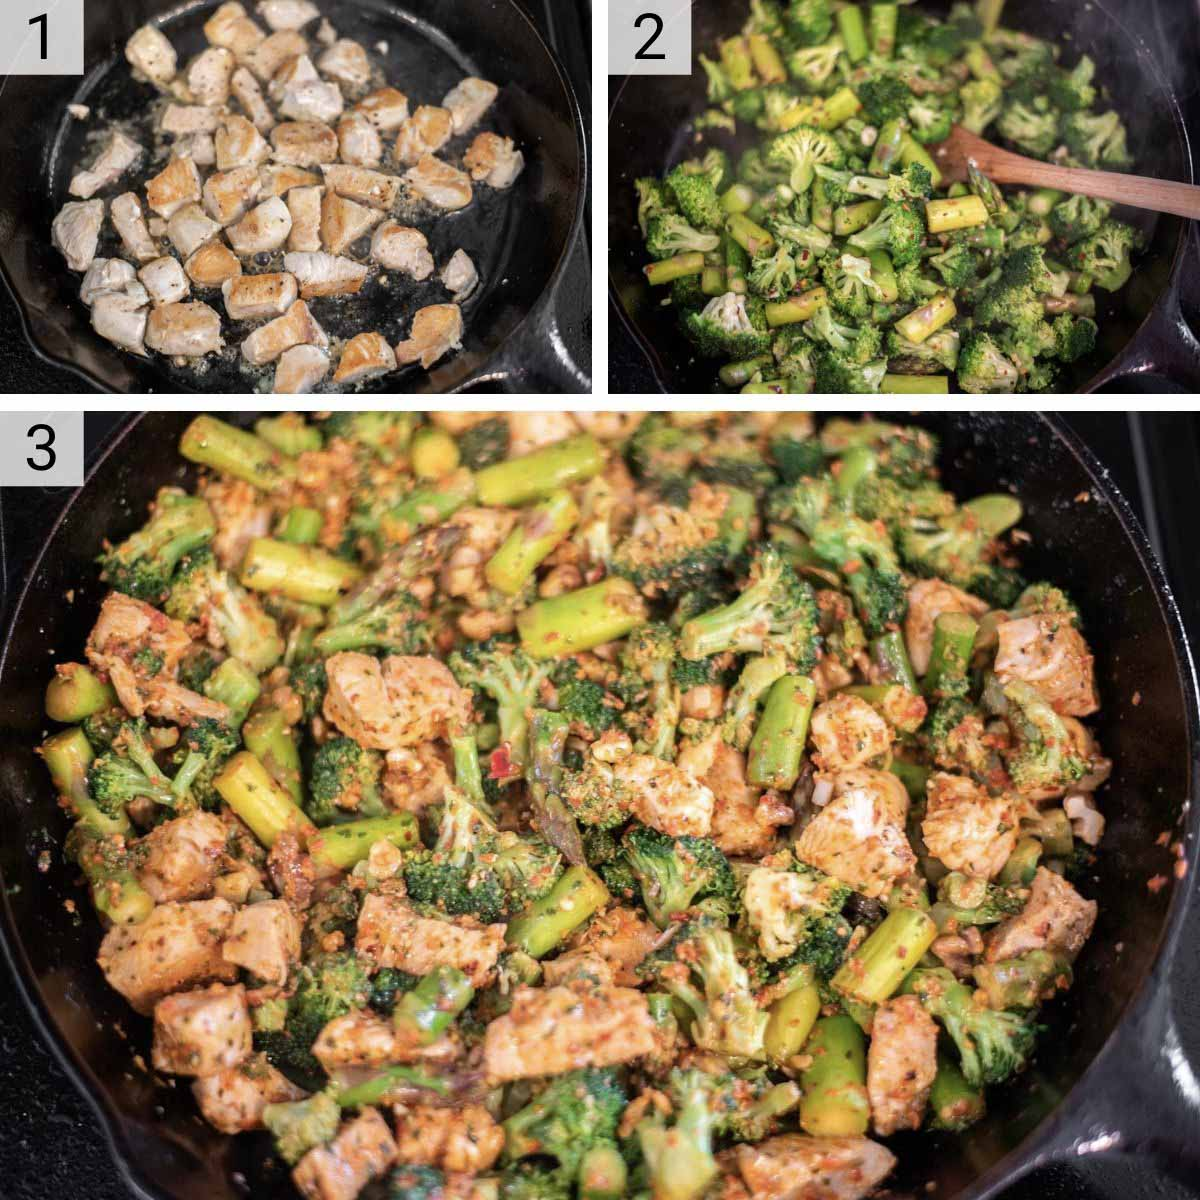 process shots of how to make roasted red pepper pesto chicken and veggies